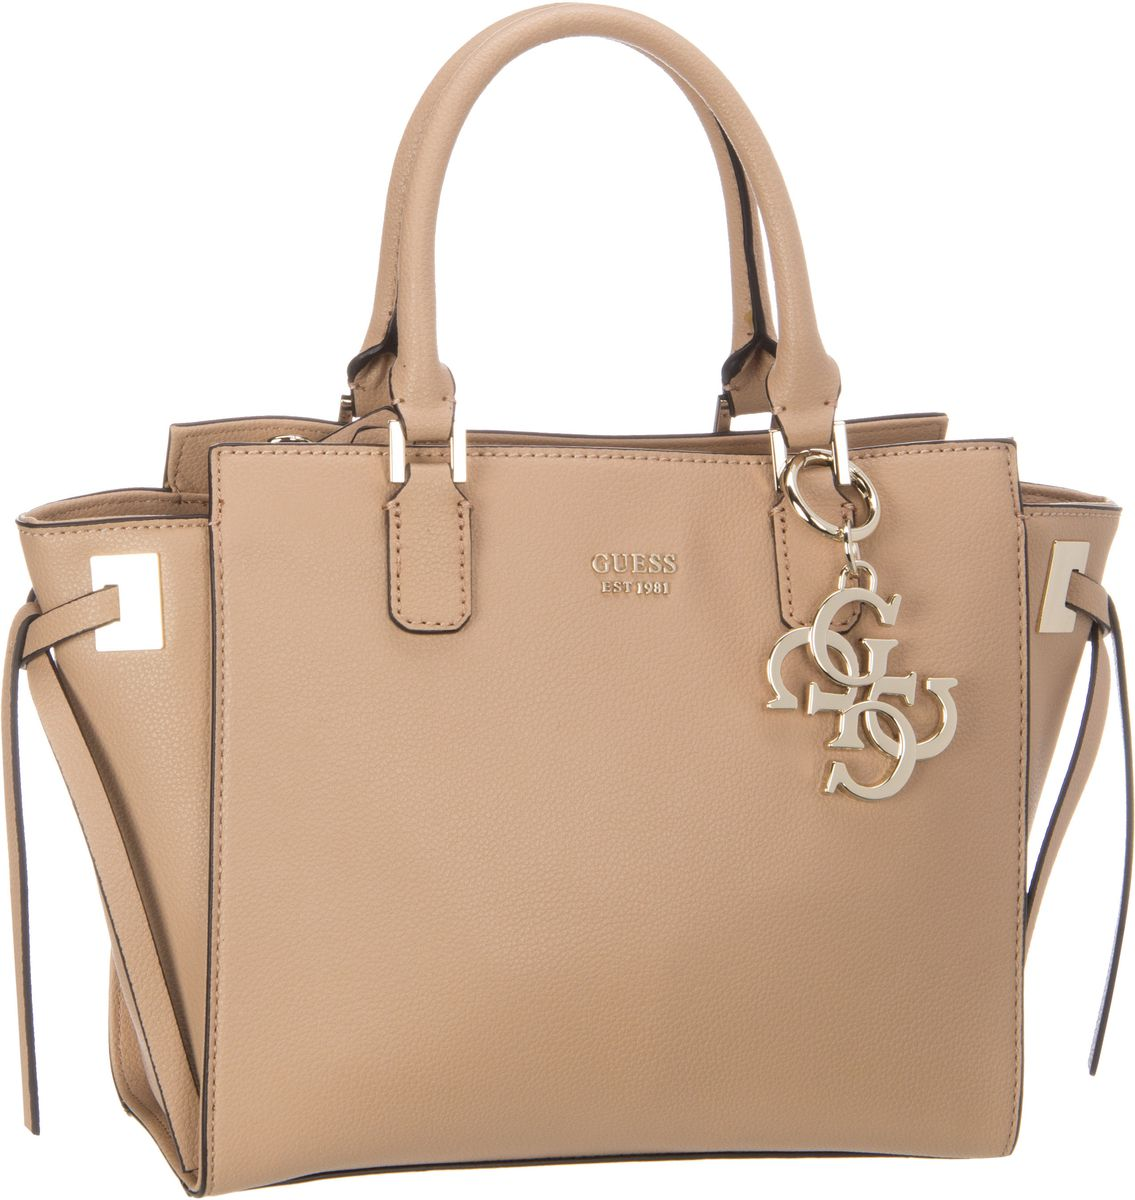 Guess Digital Status Satchel Tan - Handtasche